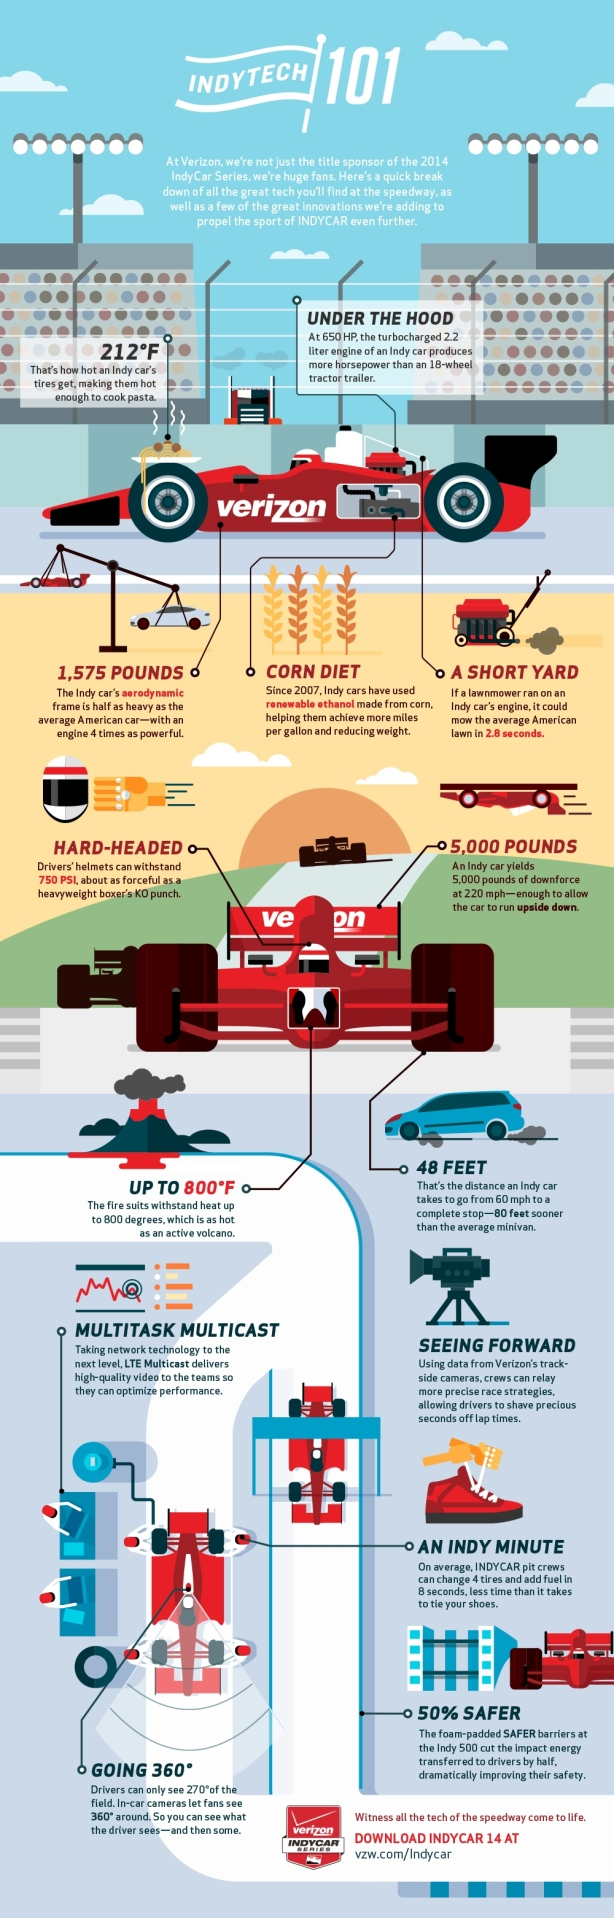 indycar-infographic-1000x3125-full